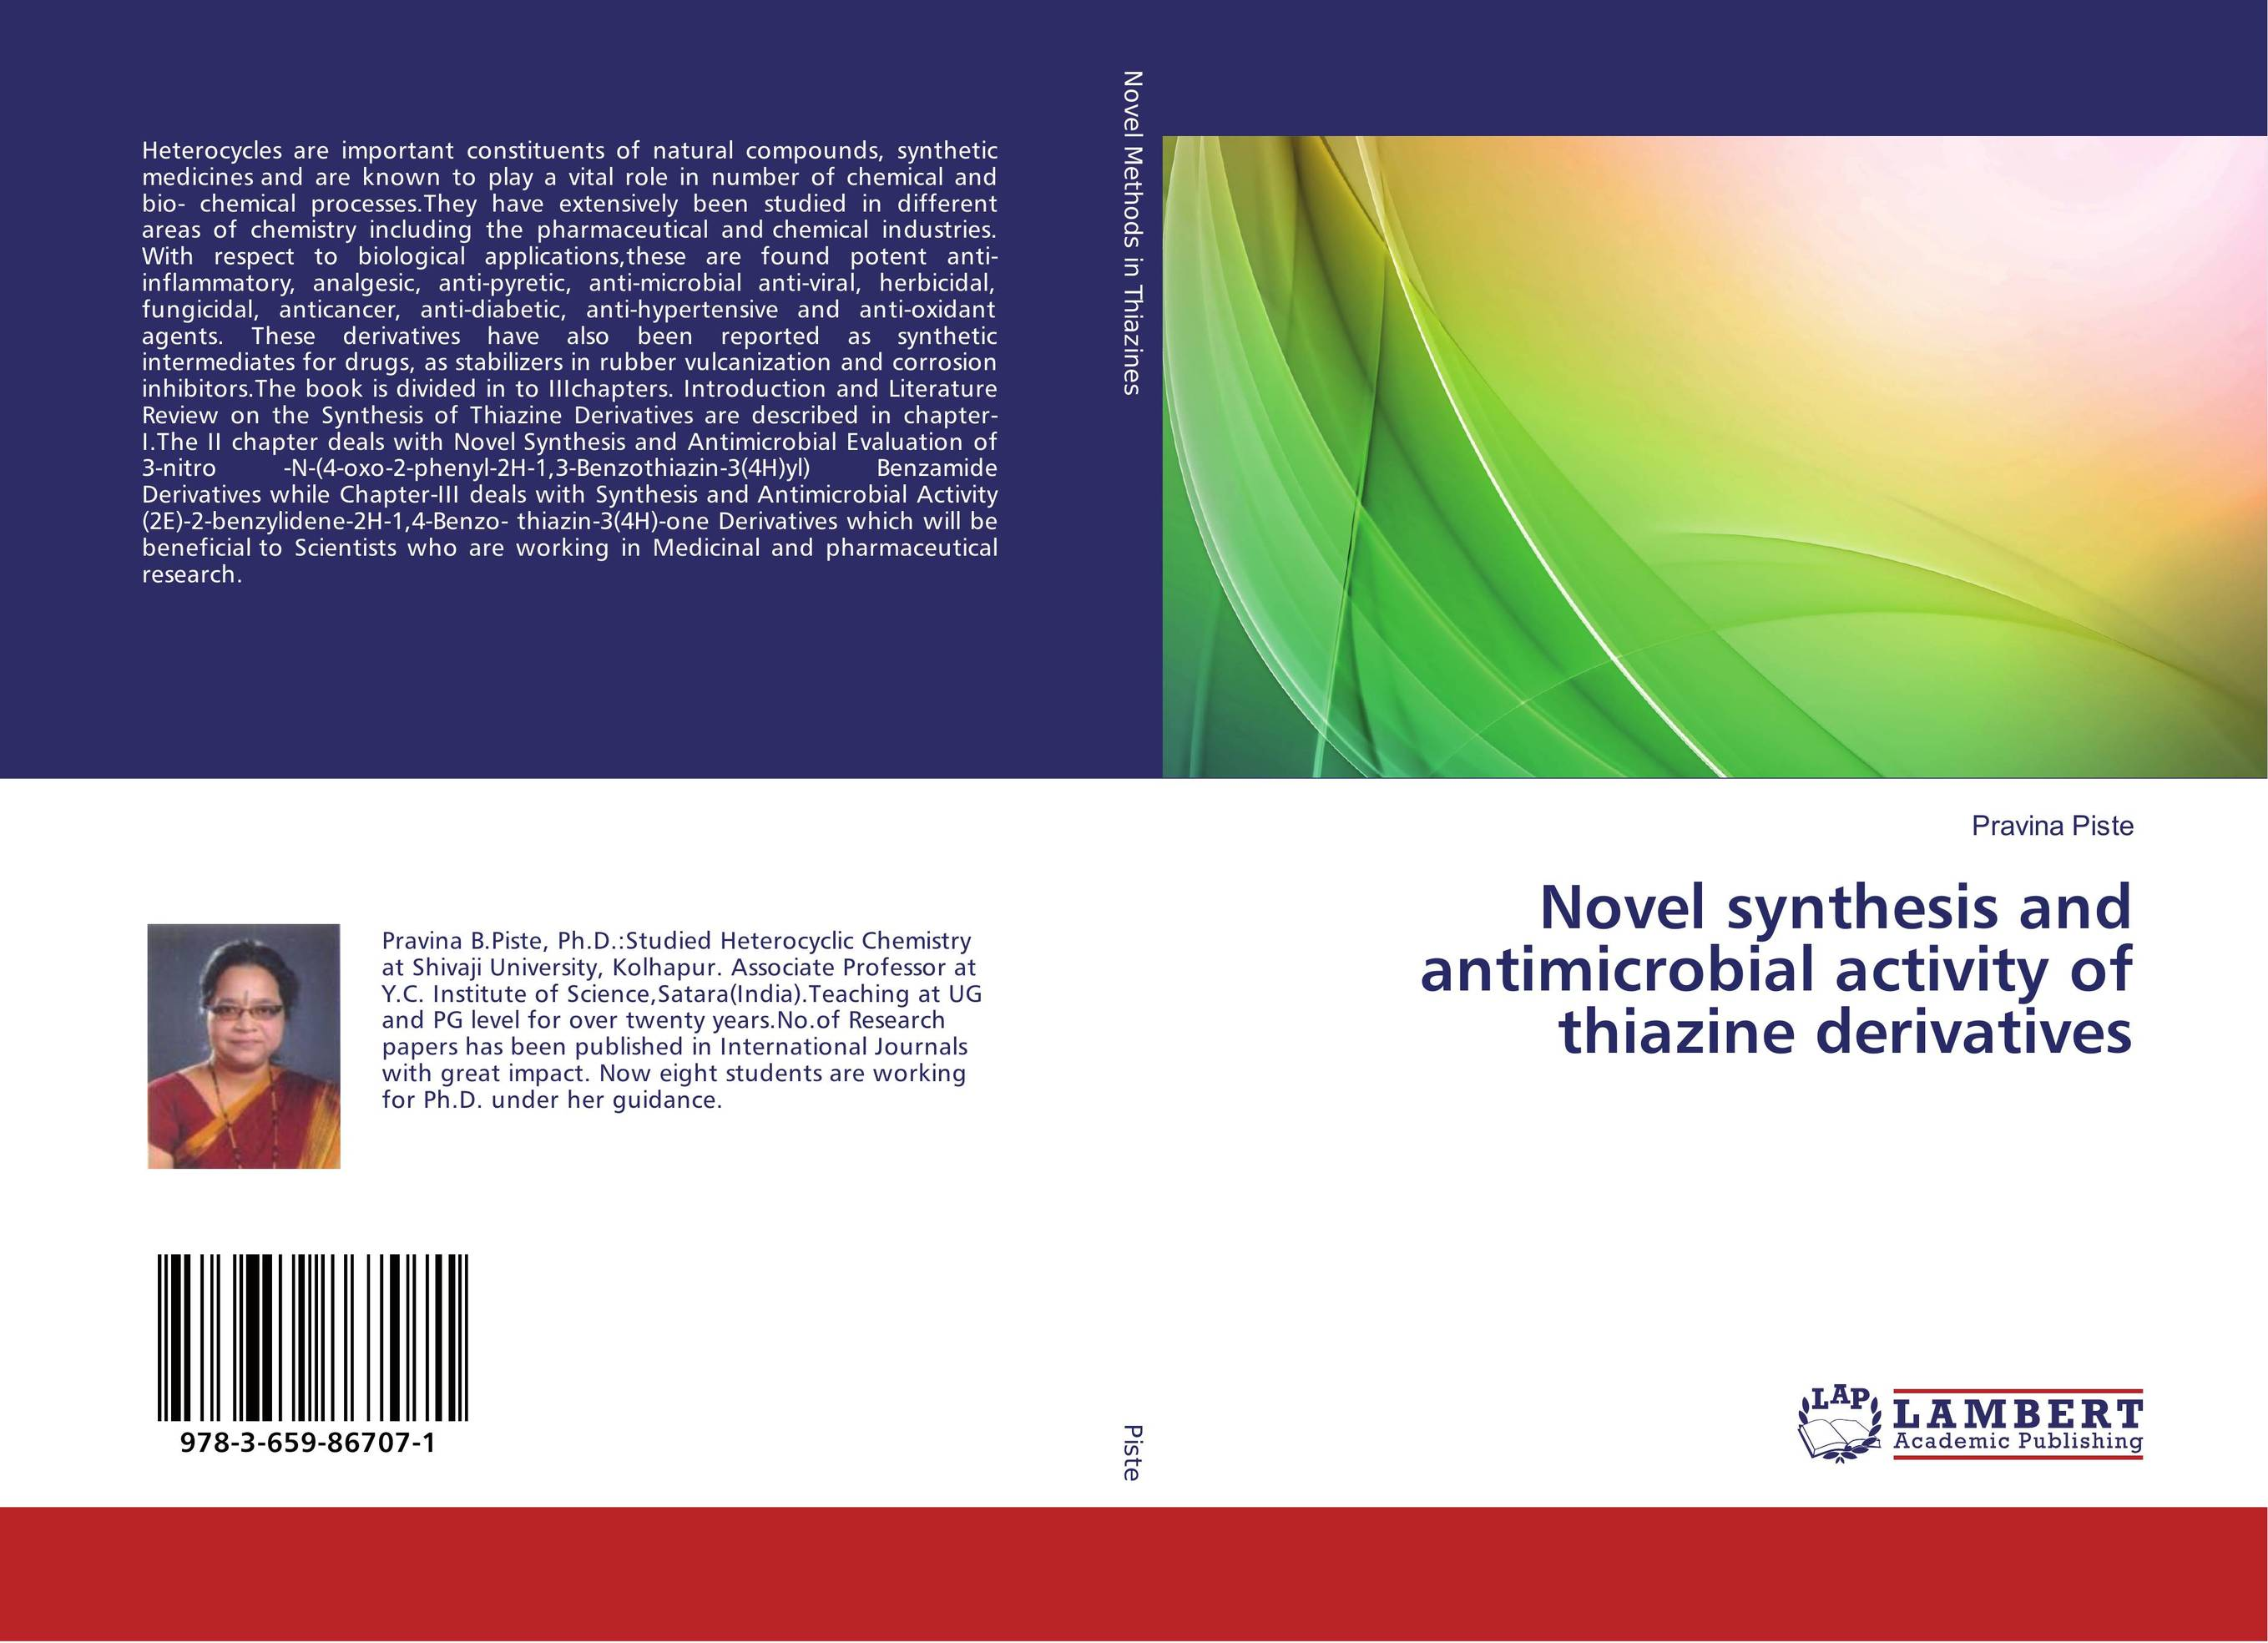 Novel synthesis and antimicrobial activity of thiazine derivatives купить